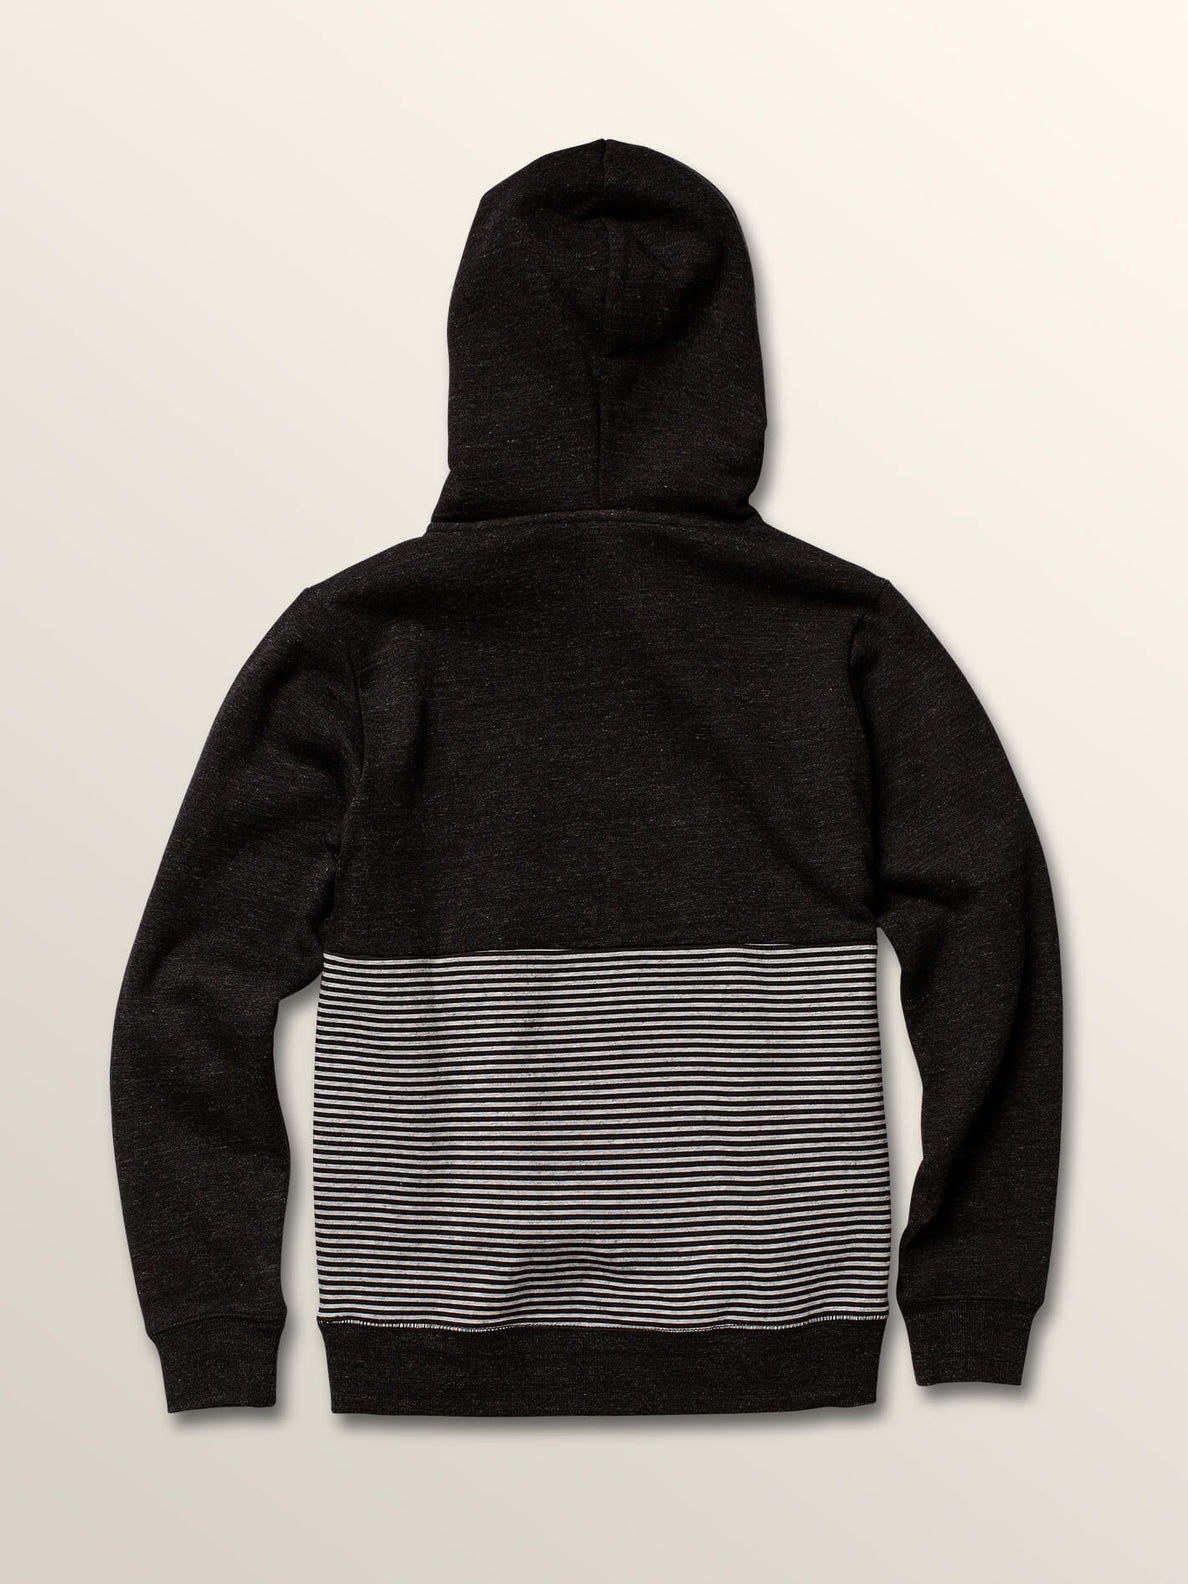 Big Boys Maddock Pullover Hoodie In Asphalt Black, Back View